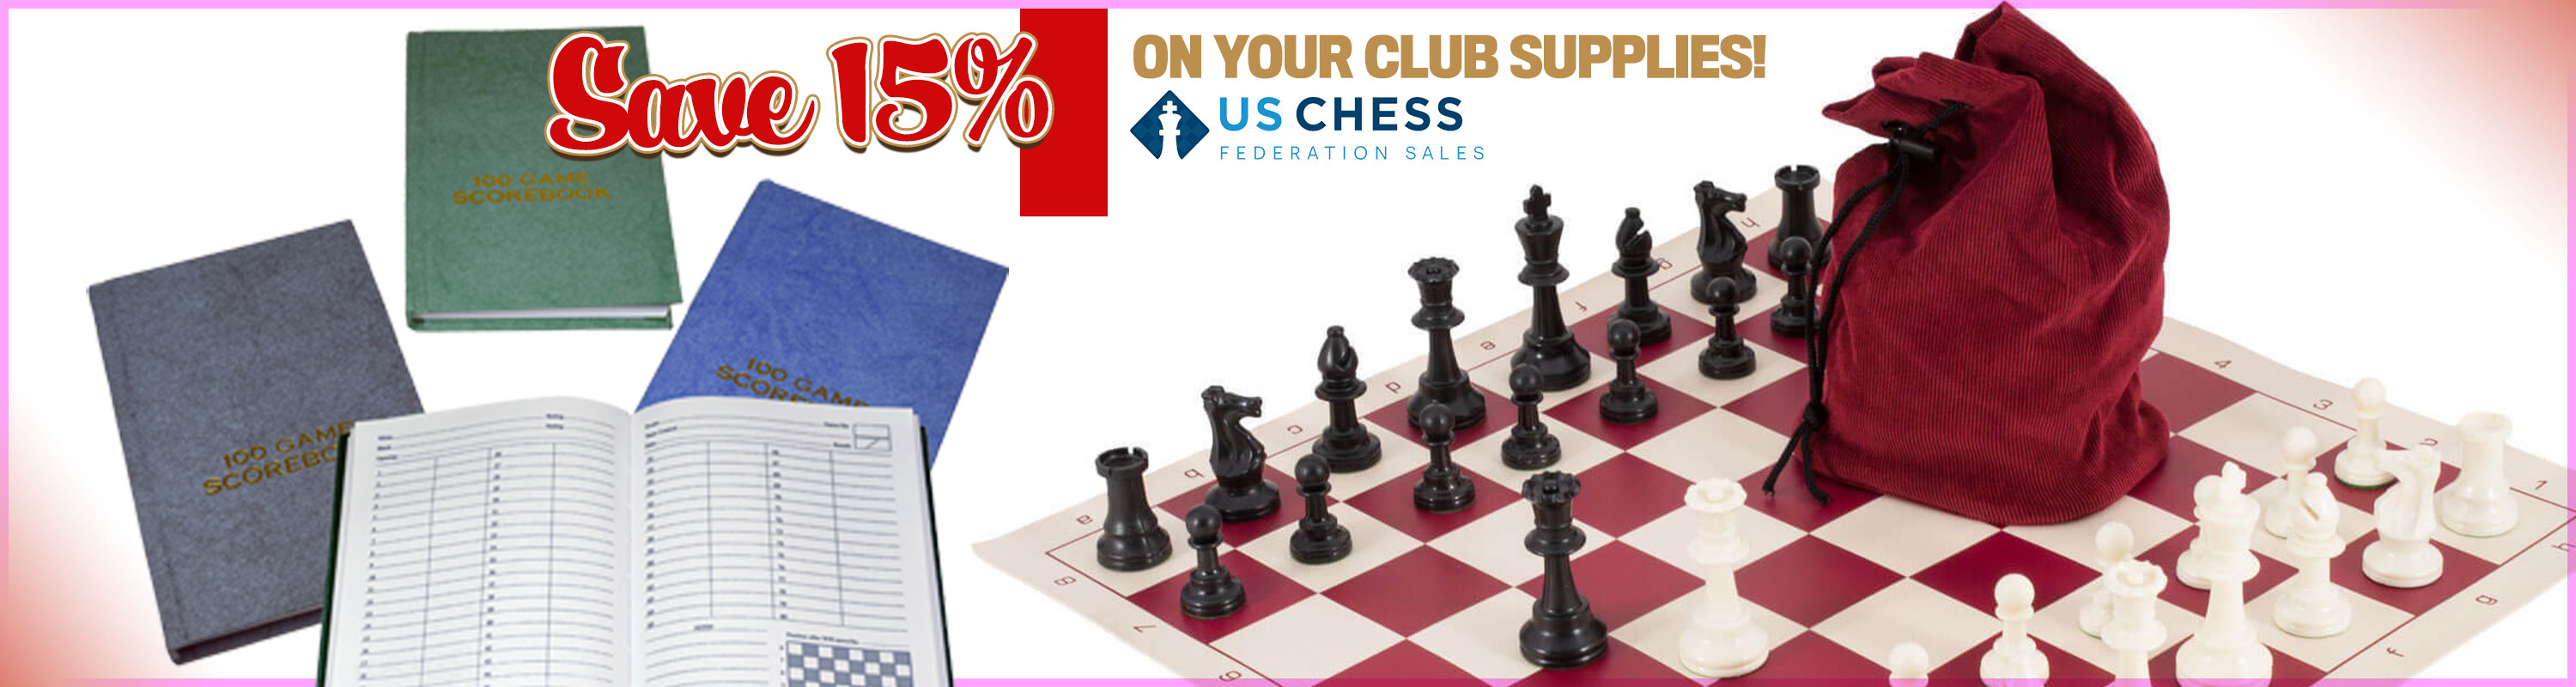 Save 15% on Chess Club Supplies